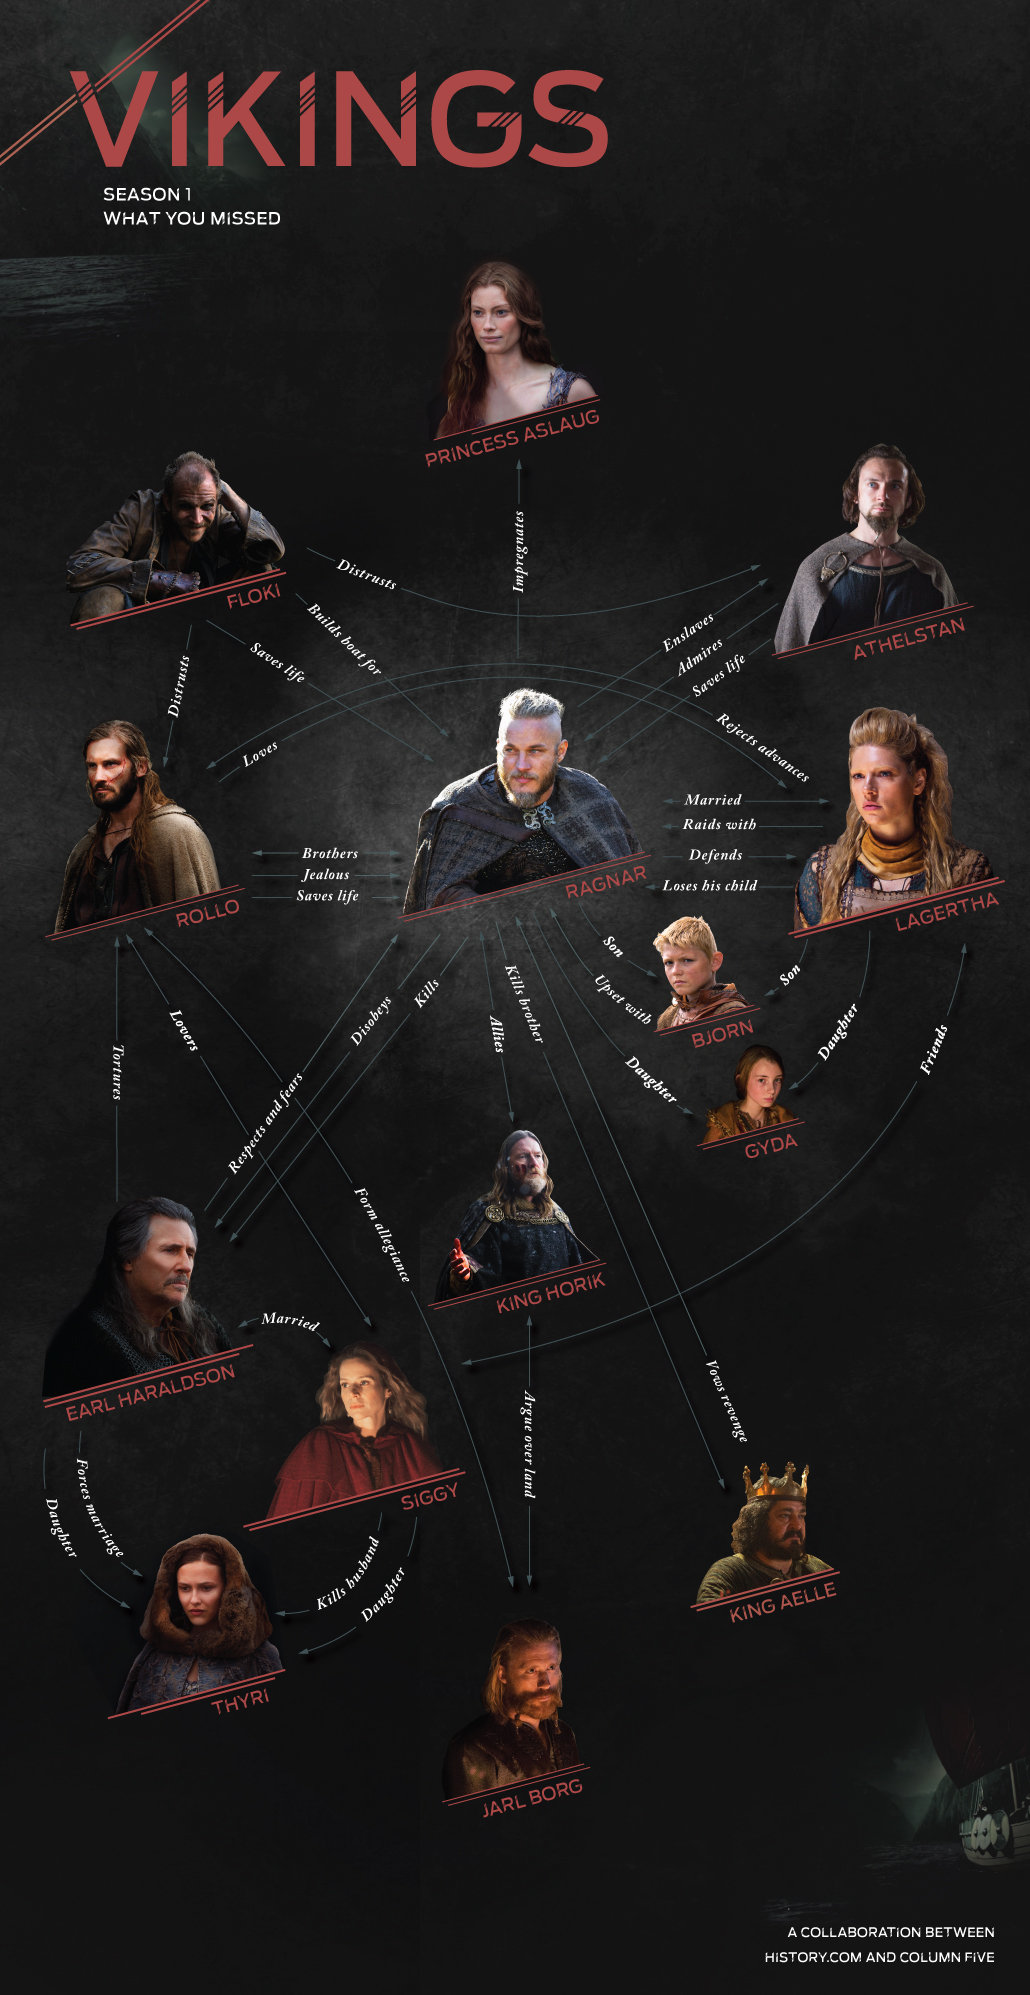 Infographic: Vikings Season 1: What You Missed